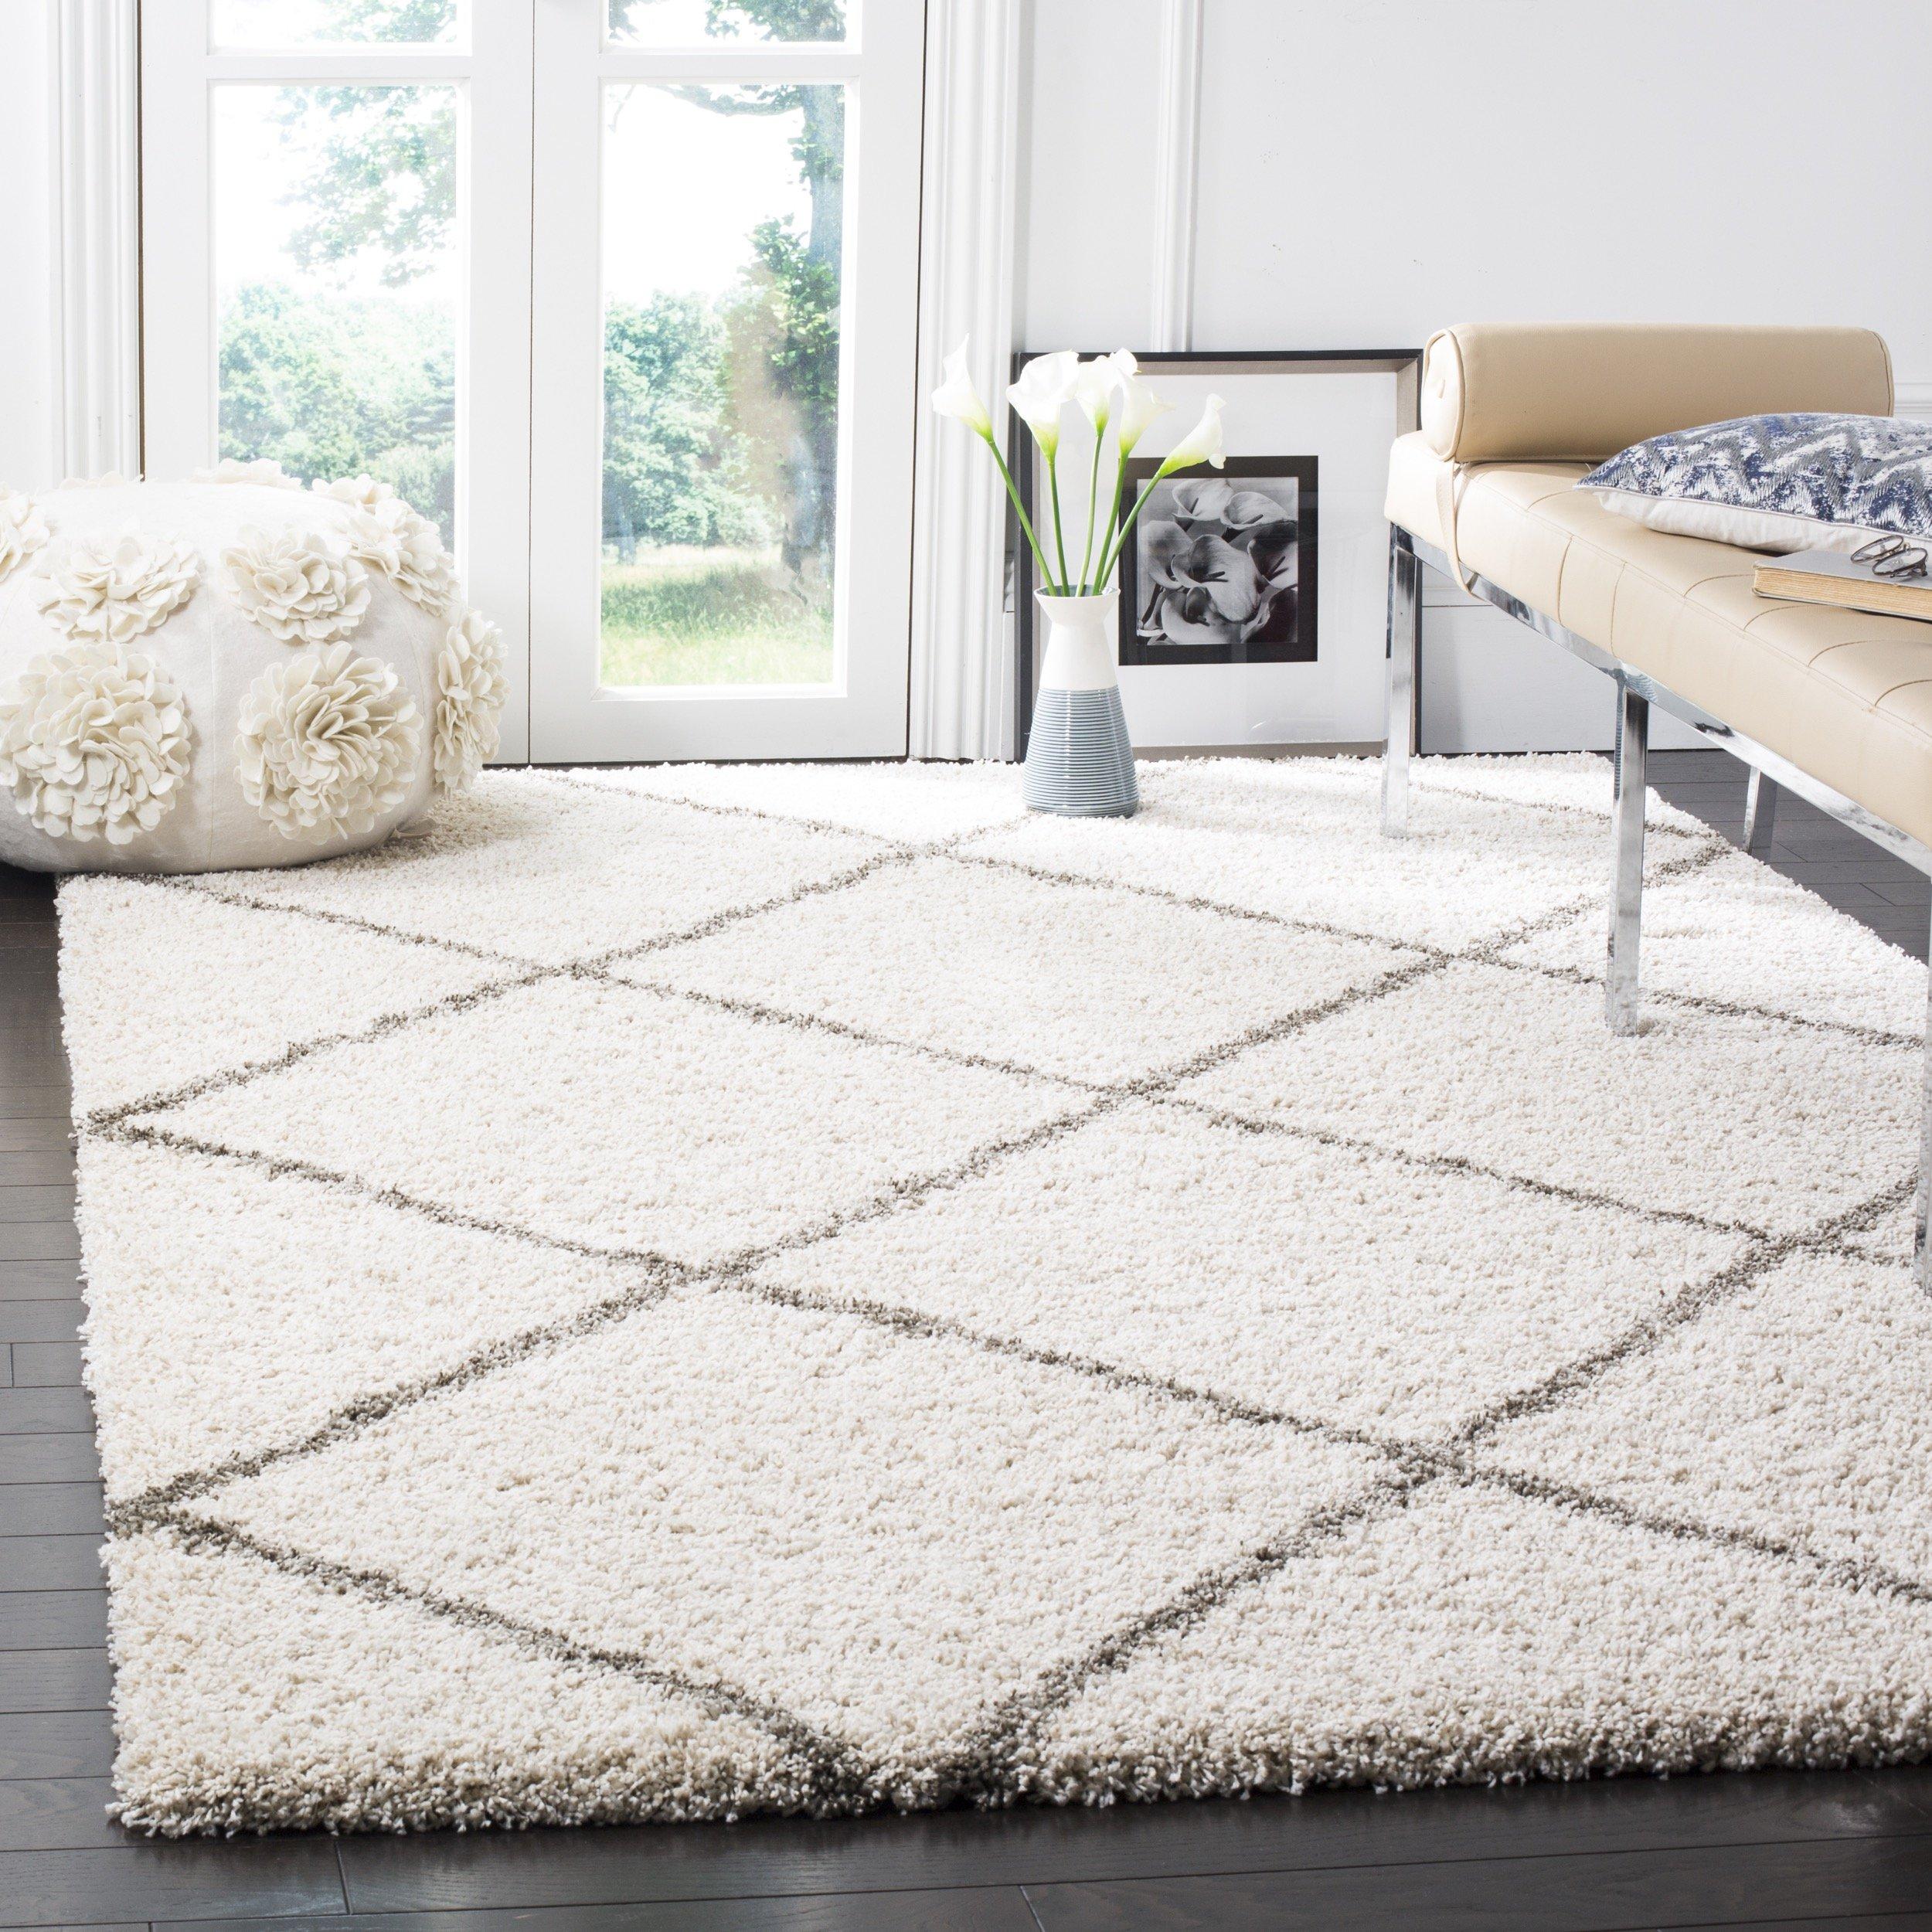 Safavieh Hudson Shag Collection SGH281A Ivory and Grey Moroccan Diamond Trellis Area Rug (10' x 14') by Safavieh